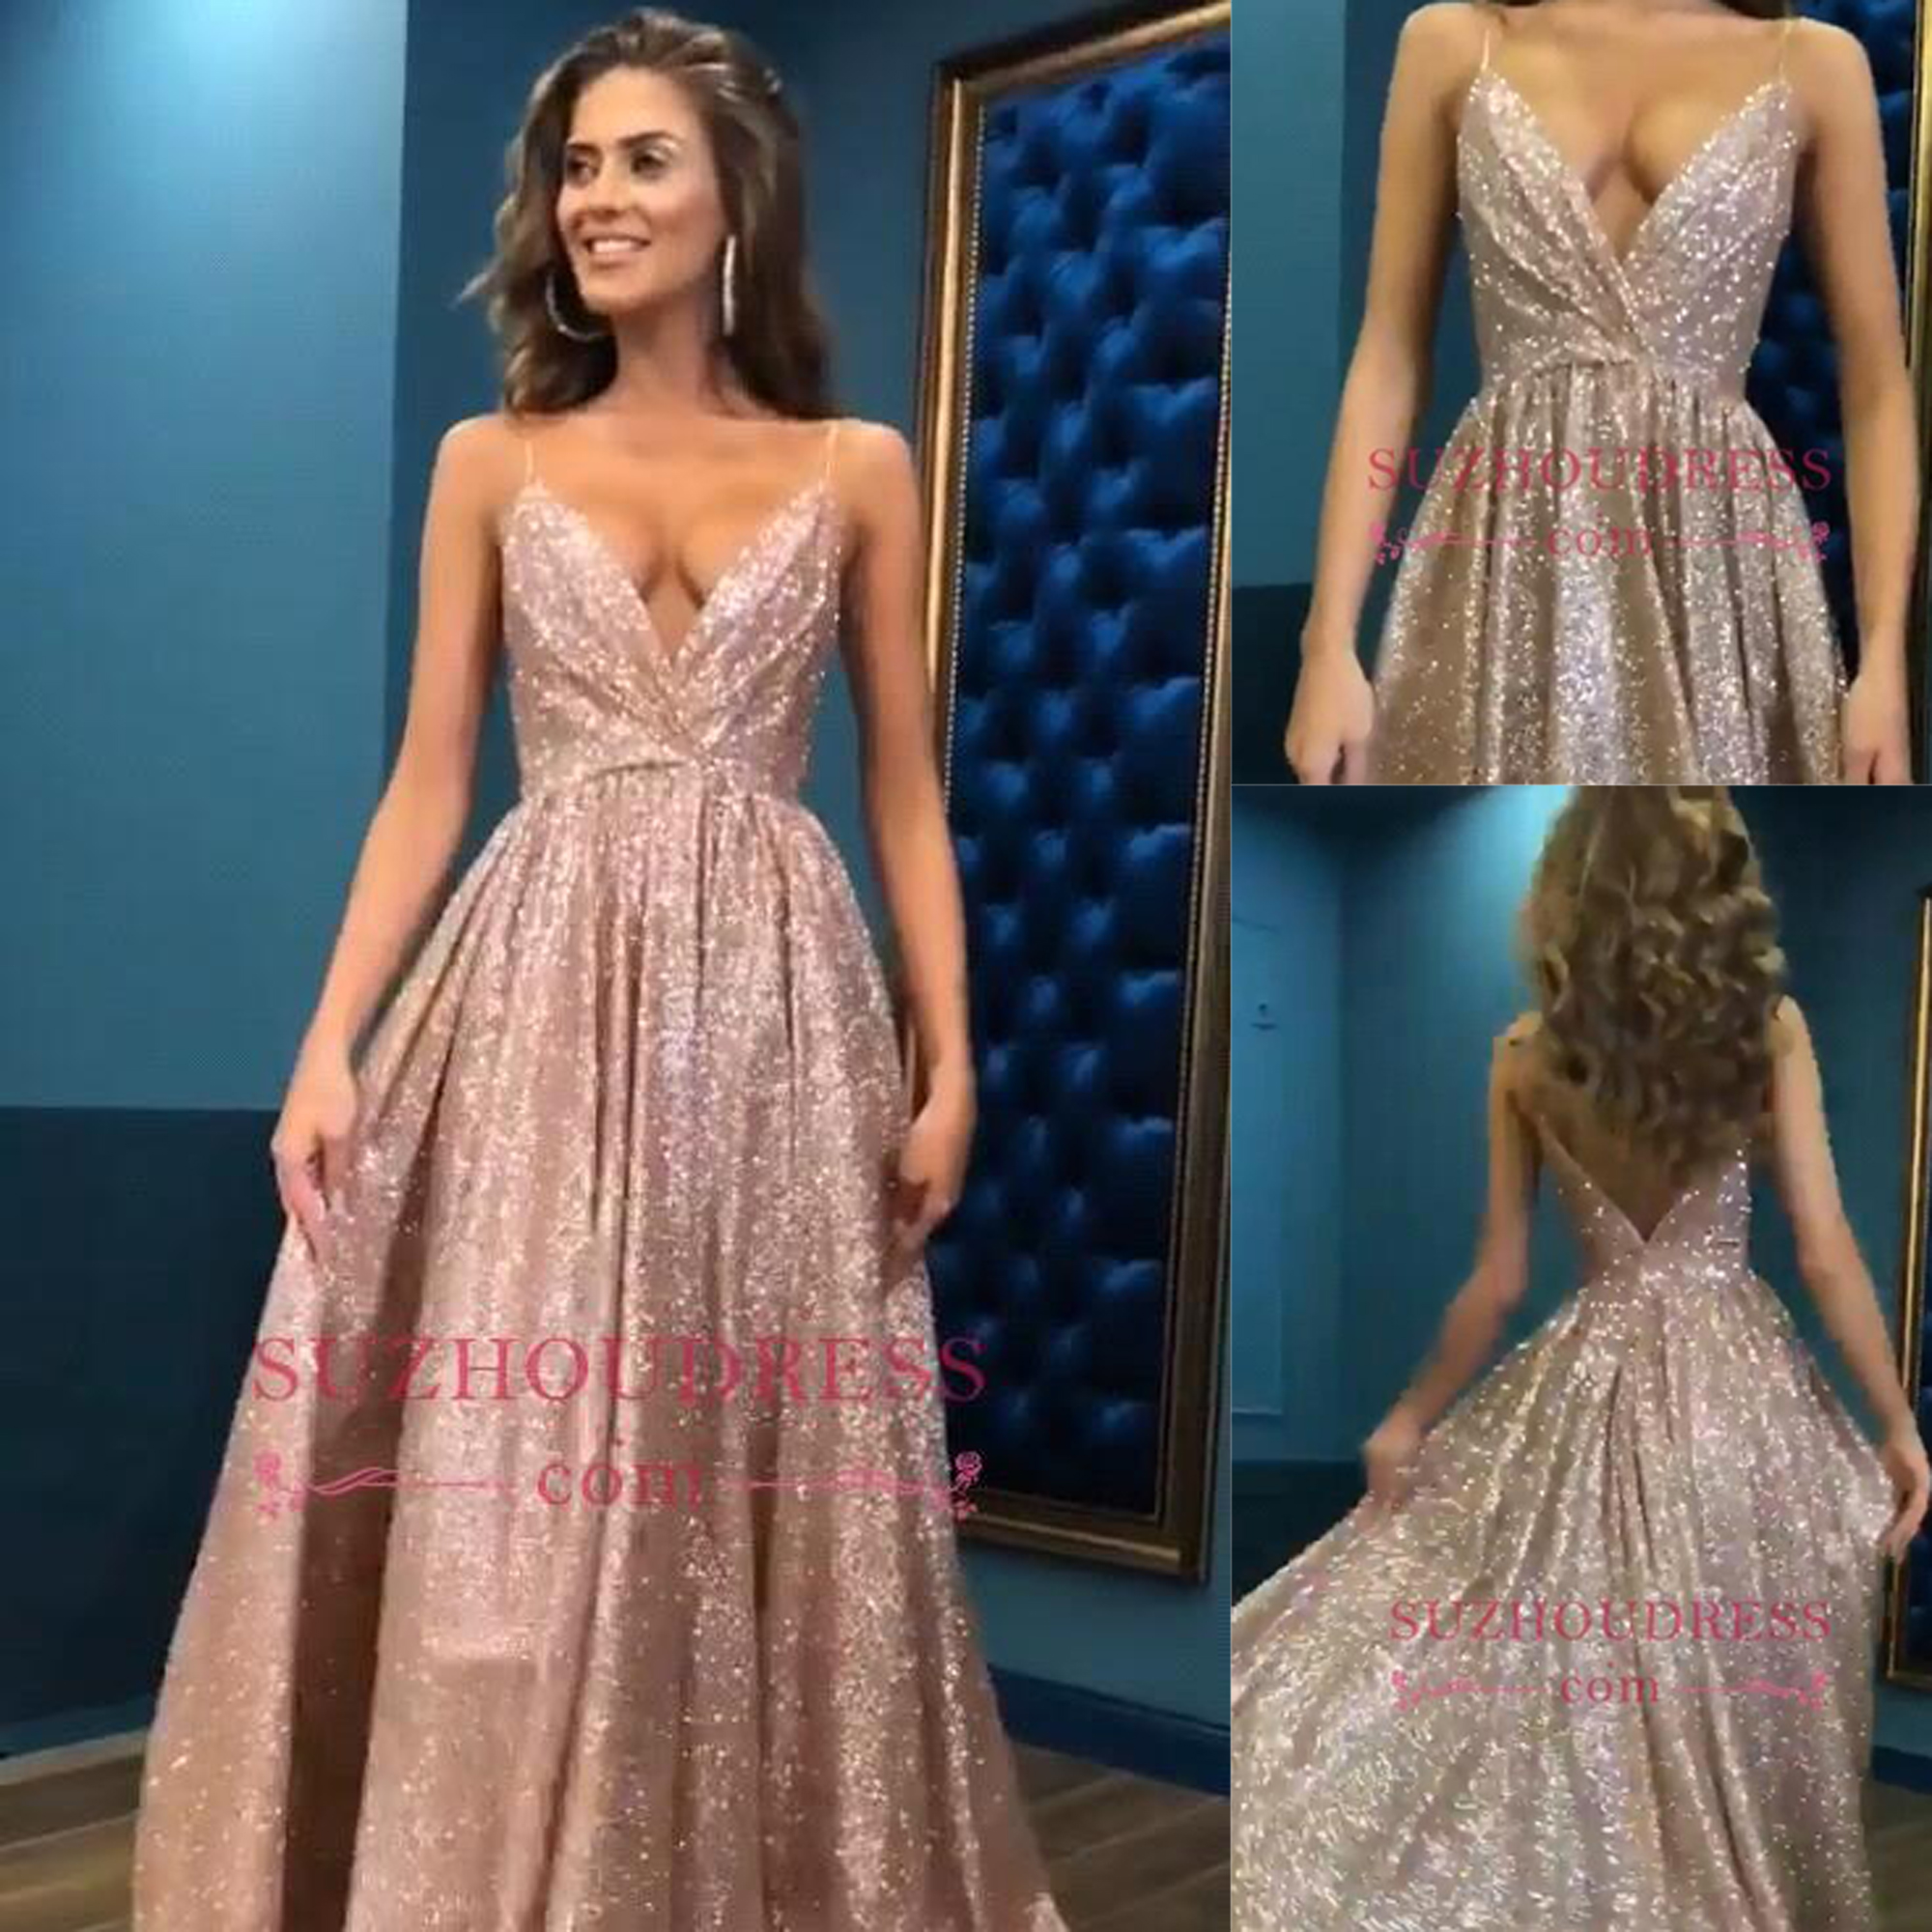 Spaghetti Straps Prom Dresses Long Rose Gold Sequins Wedding Party